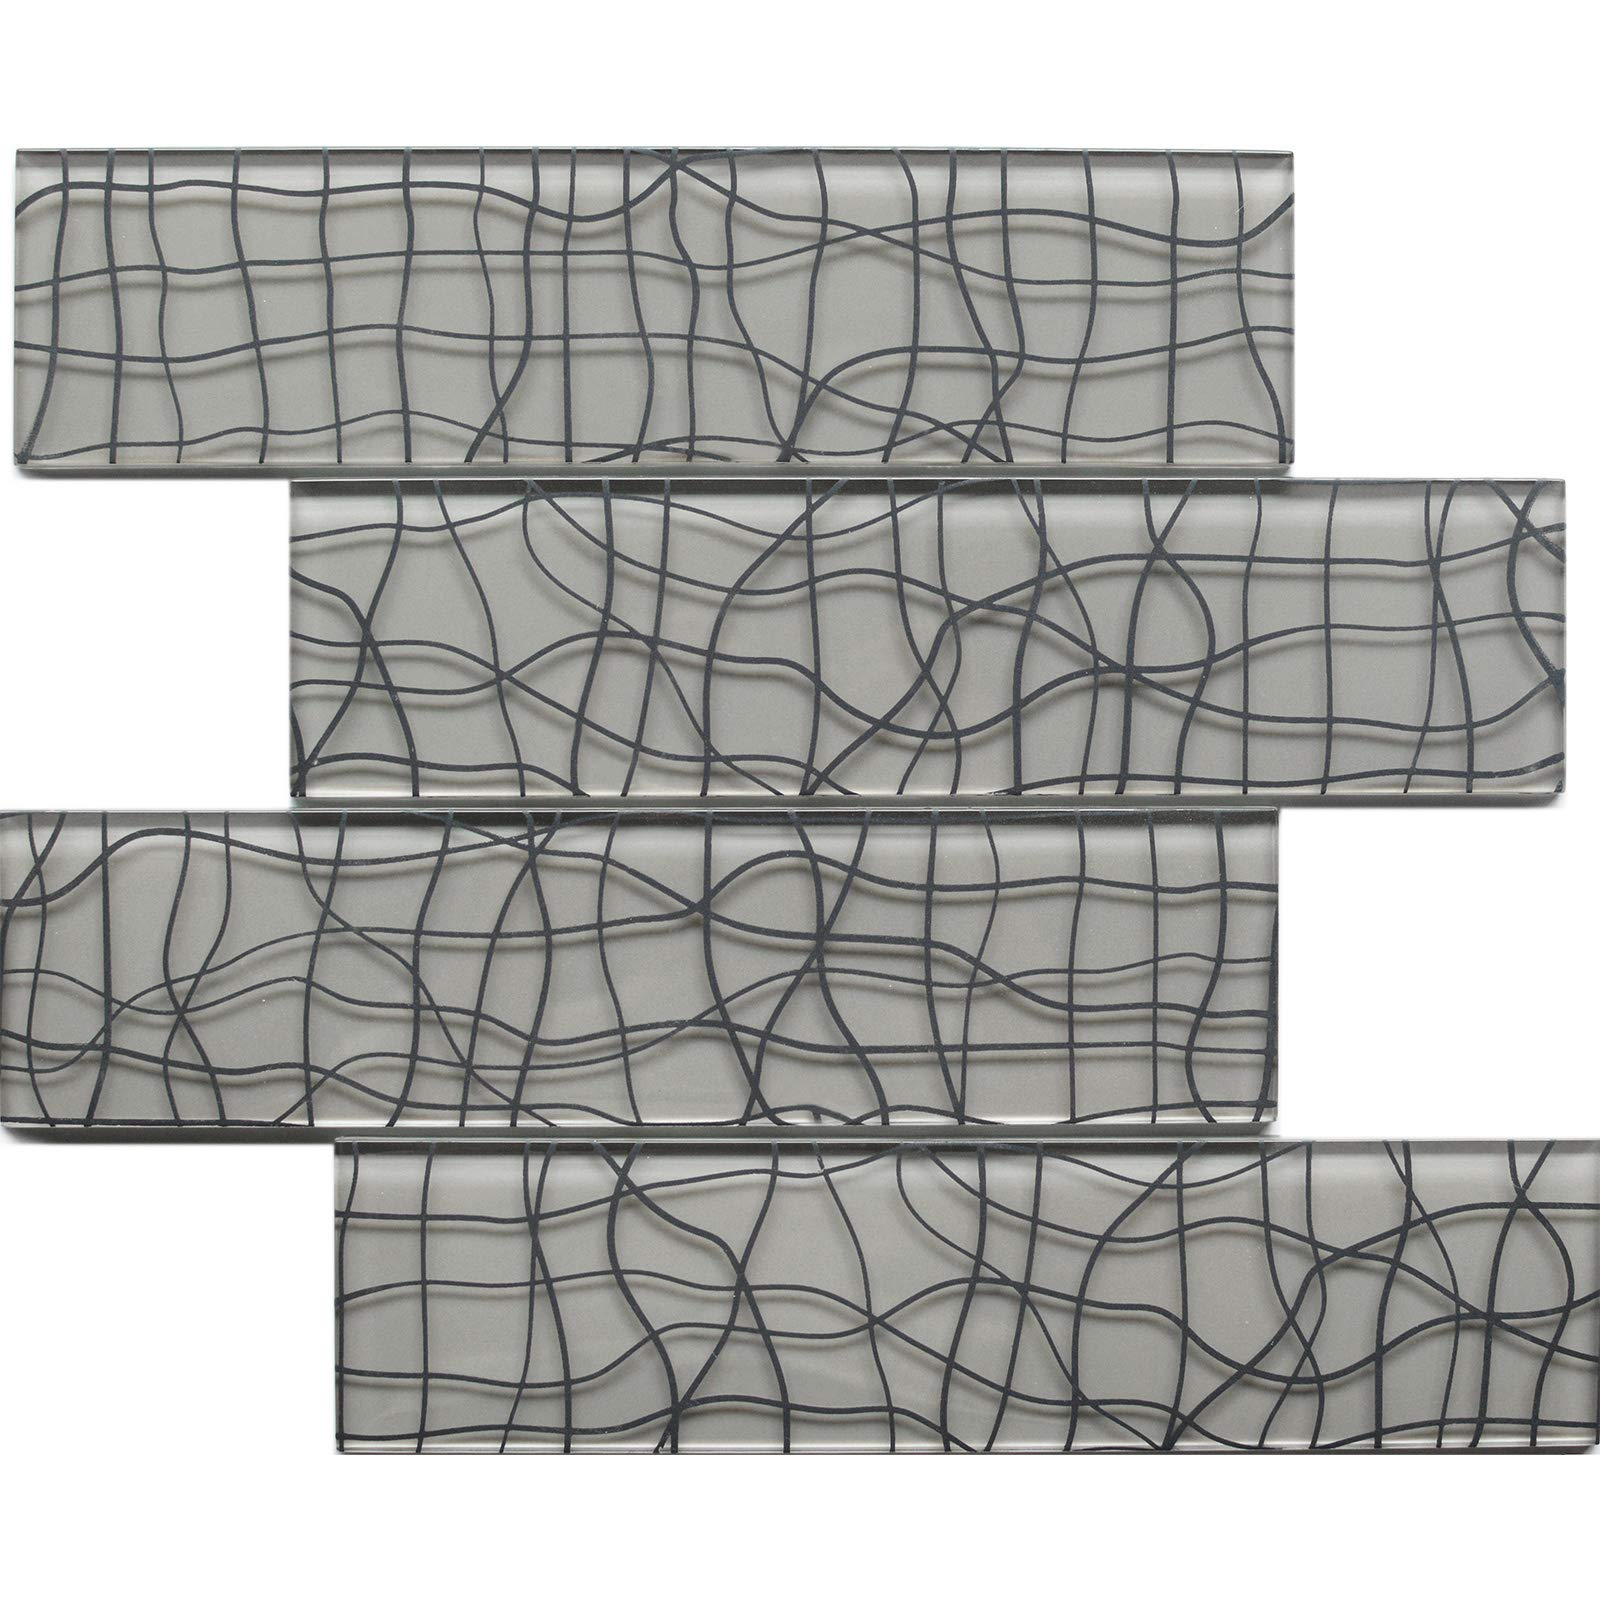 """Koozzo Glass Mosaic Tile, Rectangular, 11.8"""" x 2.95"""", a Pack of 6 Pieces (Approx. 1.45 sq ft) for Kitchen backsplash, Shower Wall, Bathroom Tile, Glossy Grey"""